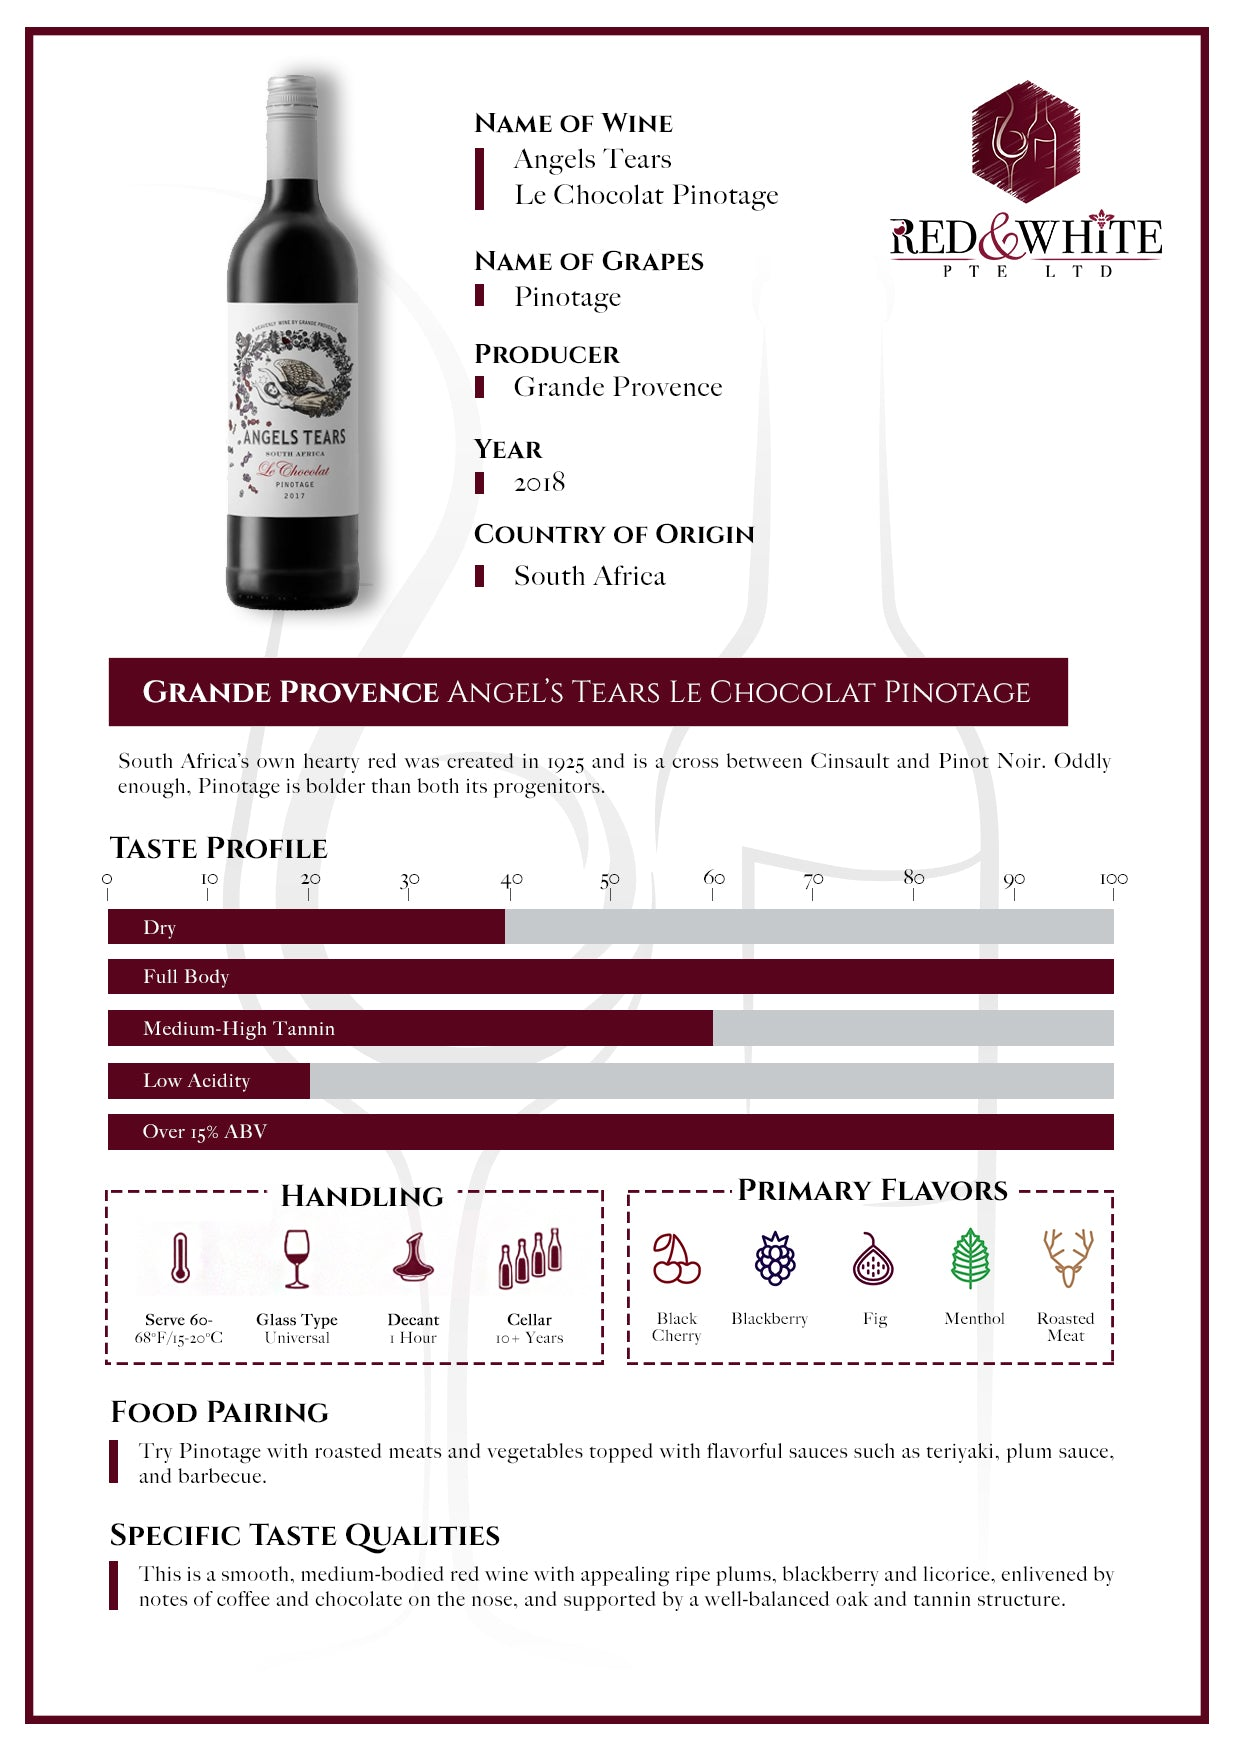 Grande Provence Angel's Tears Le Chocolat Pinotage 2018